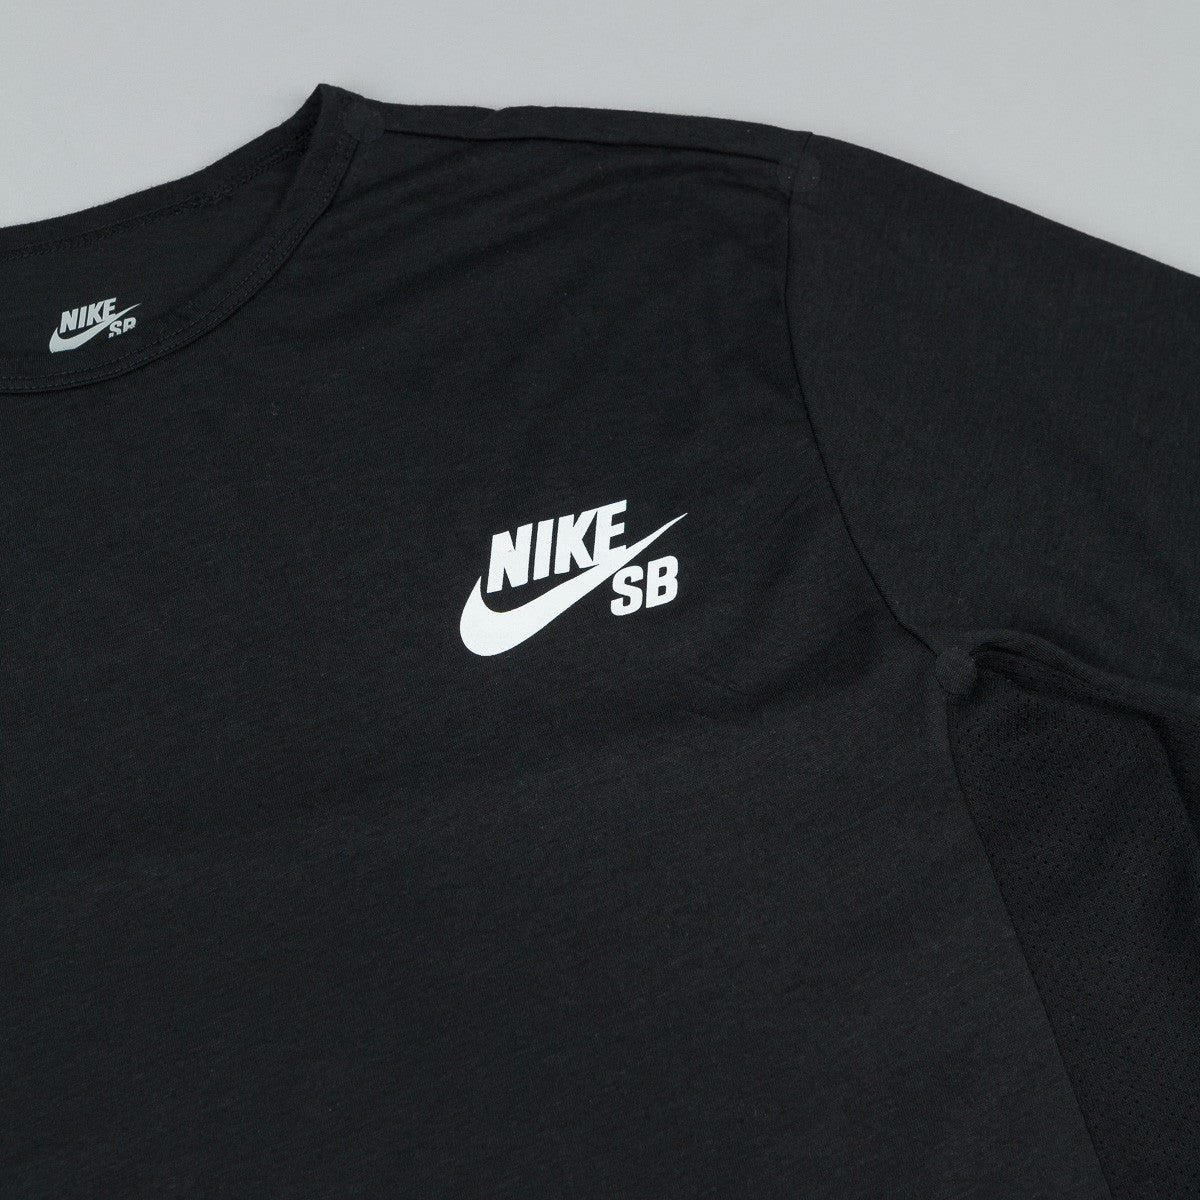 Nike SB Dri-Fit Skyline Cool T-Shirt - Black / White